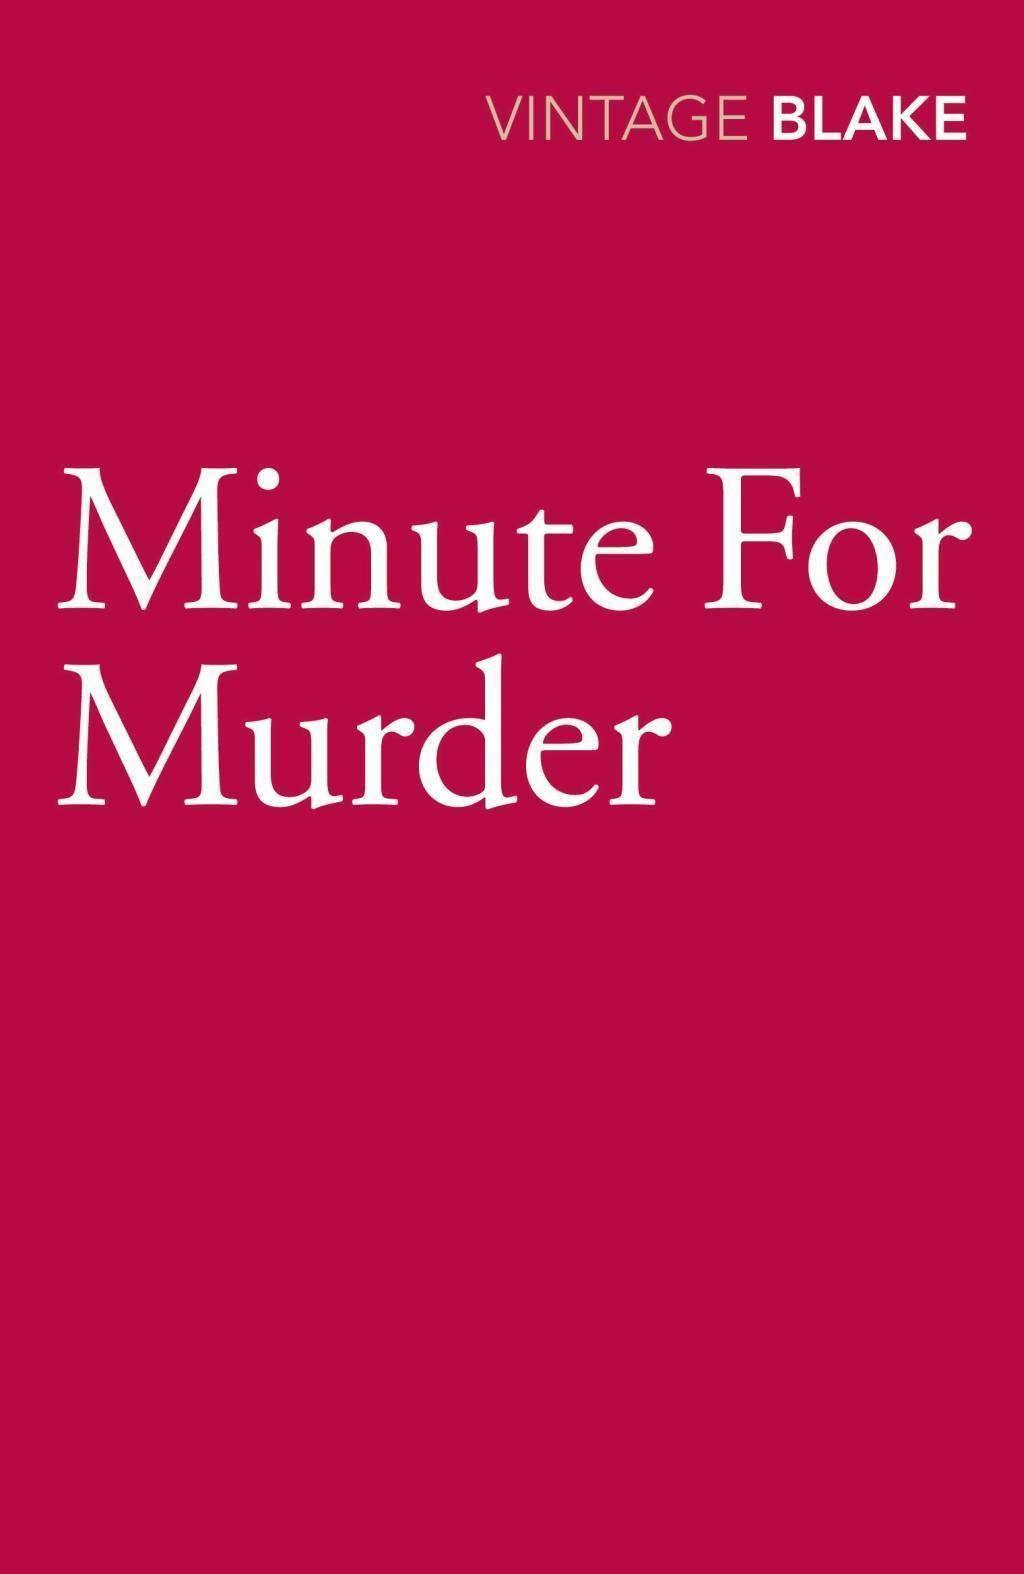 Minute for Murder